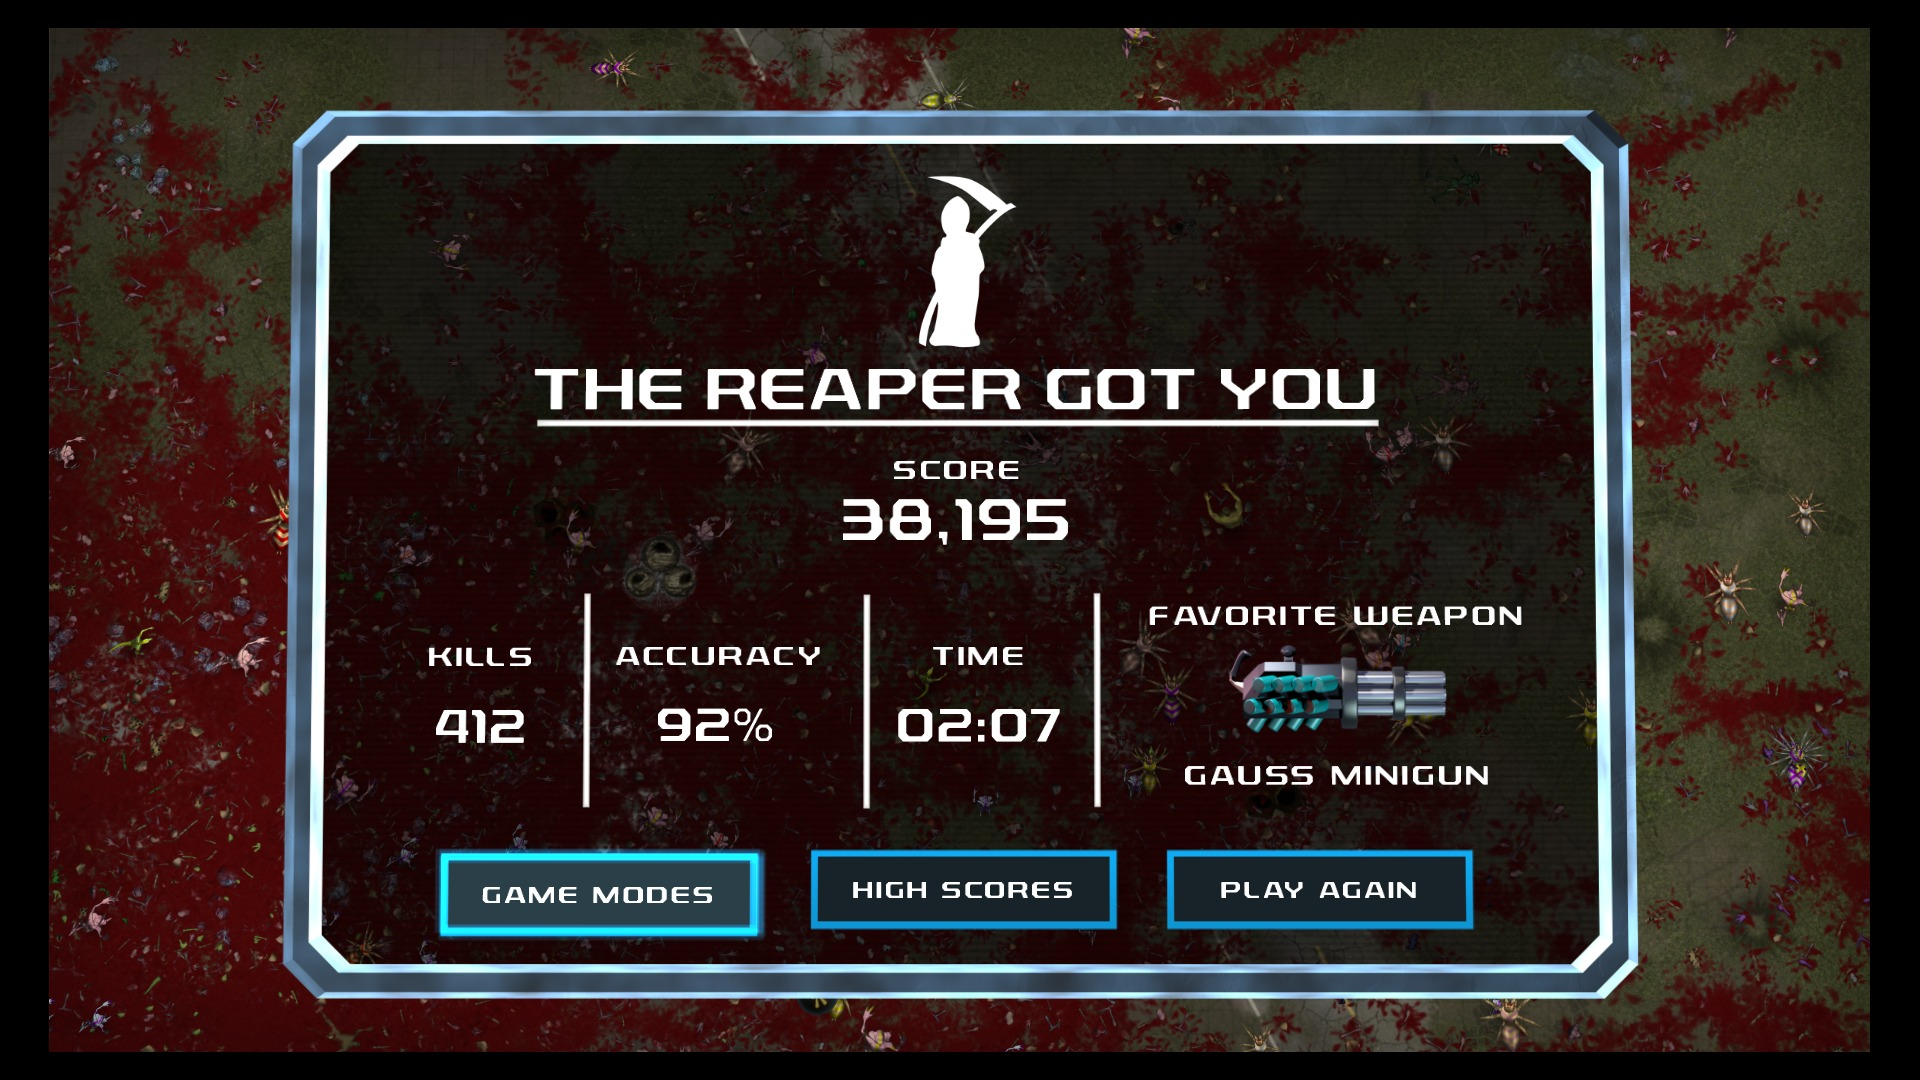 The Reaper Will Always Get You... Eventually.